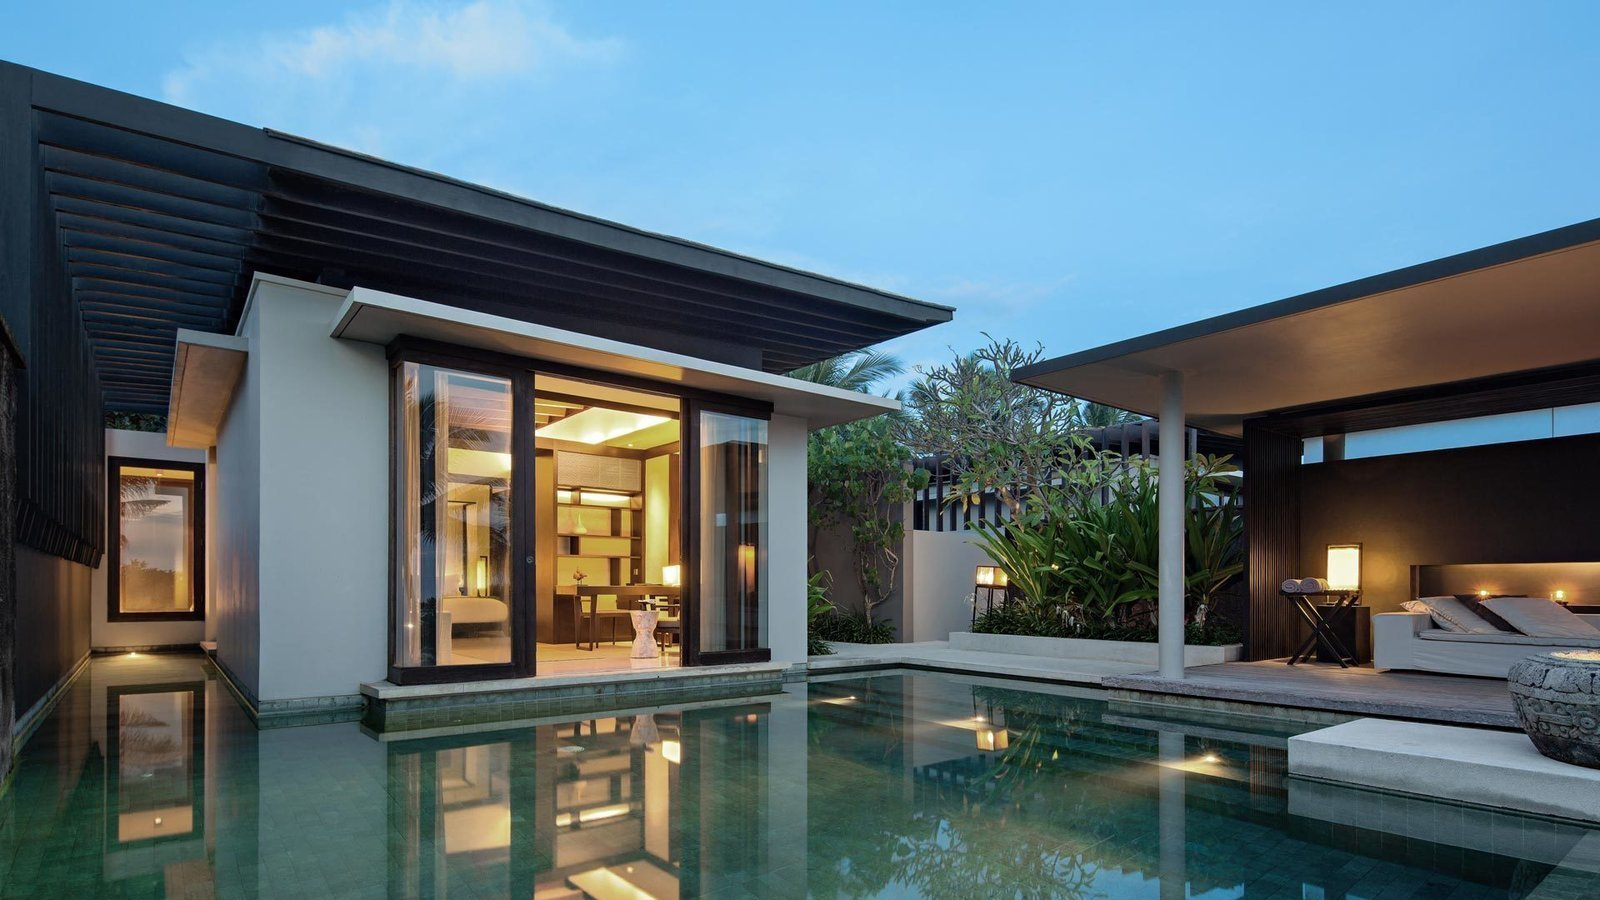 If you want to escape the crowds while in Bali, the clean-lined villas in Soori Bali are ideal. Designed by architect Soo K. Chan—founder of SCDA Architects—and his wife Ling Fu, the modern villas pay homage to the local culture with materials like stone from nearby village quarries, and terra cotta and ceramic ornaments crafted by Balinese artisans.  Photo 7 of 7 in 7 Incredible Island Villas in Indonesia